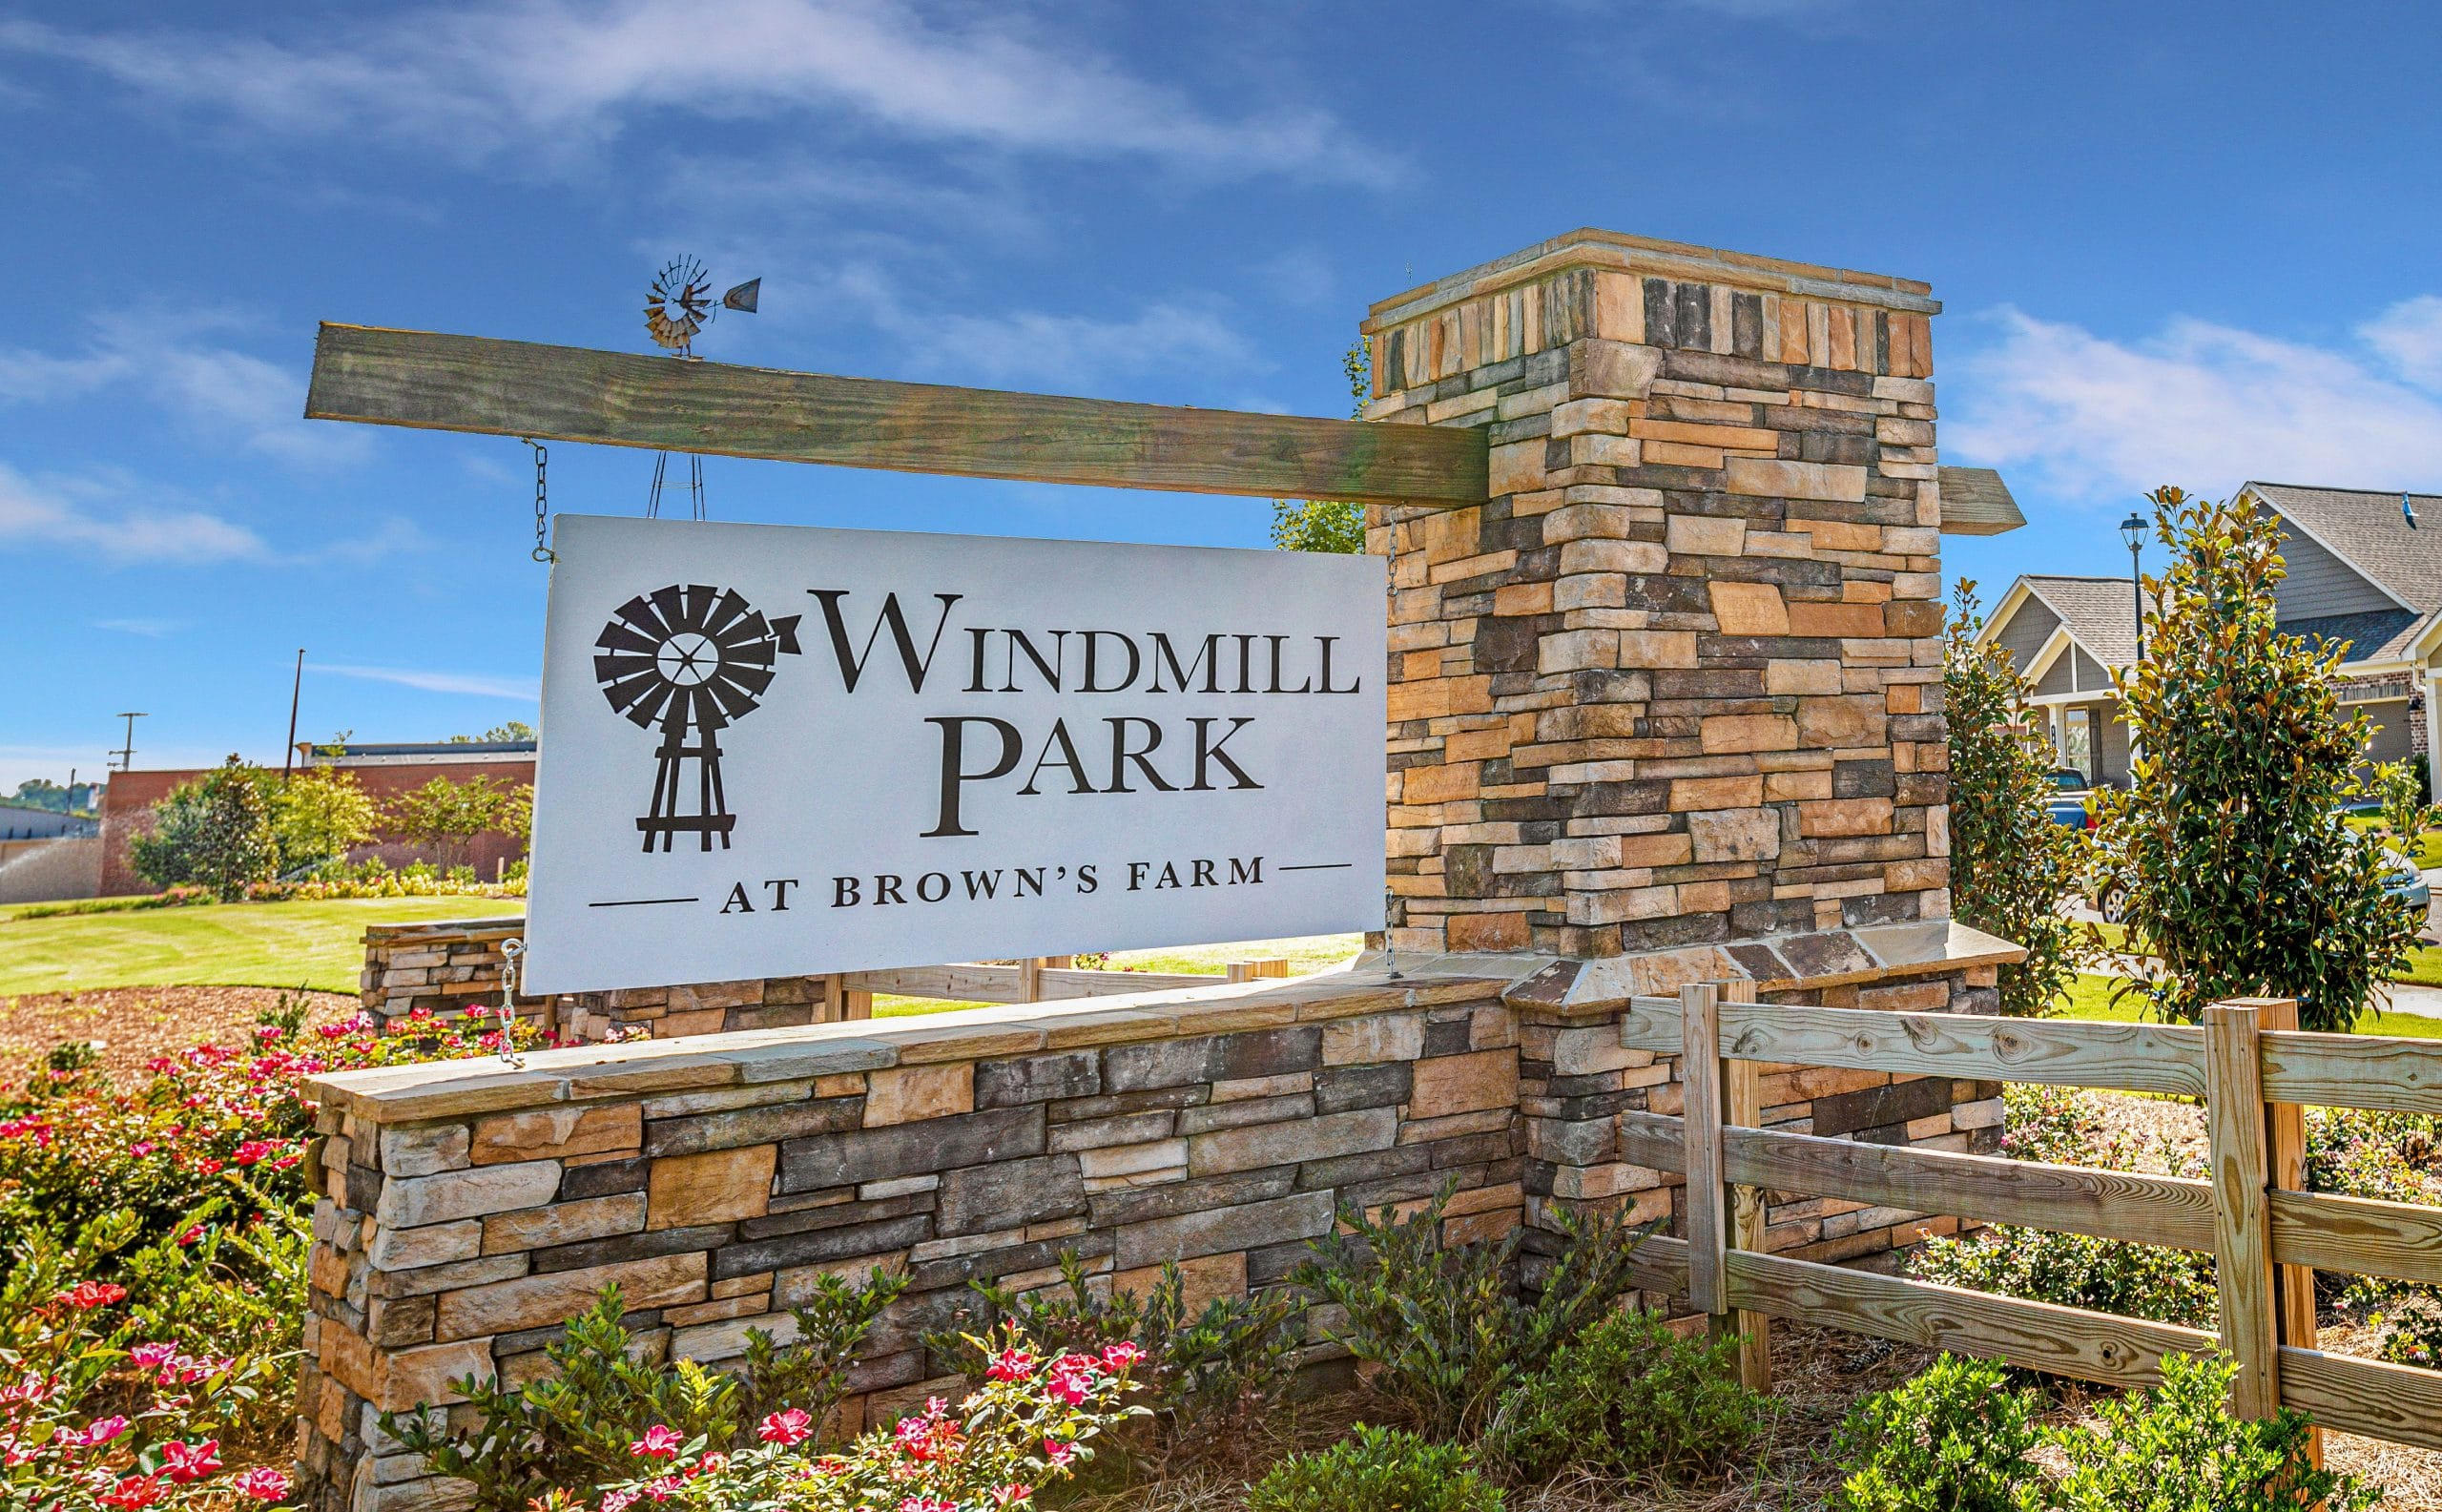 Windmill Park at Brown's Farm Entrance Sign